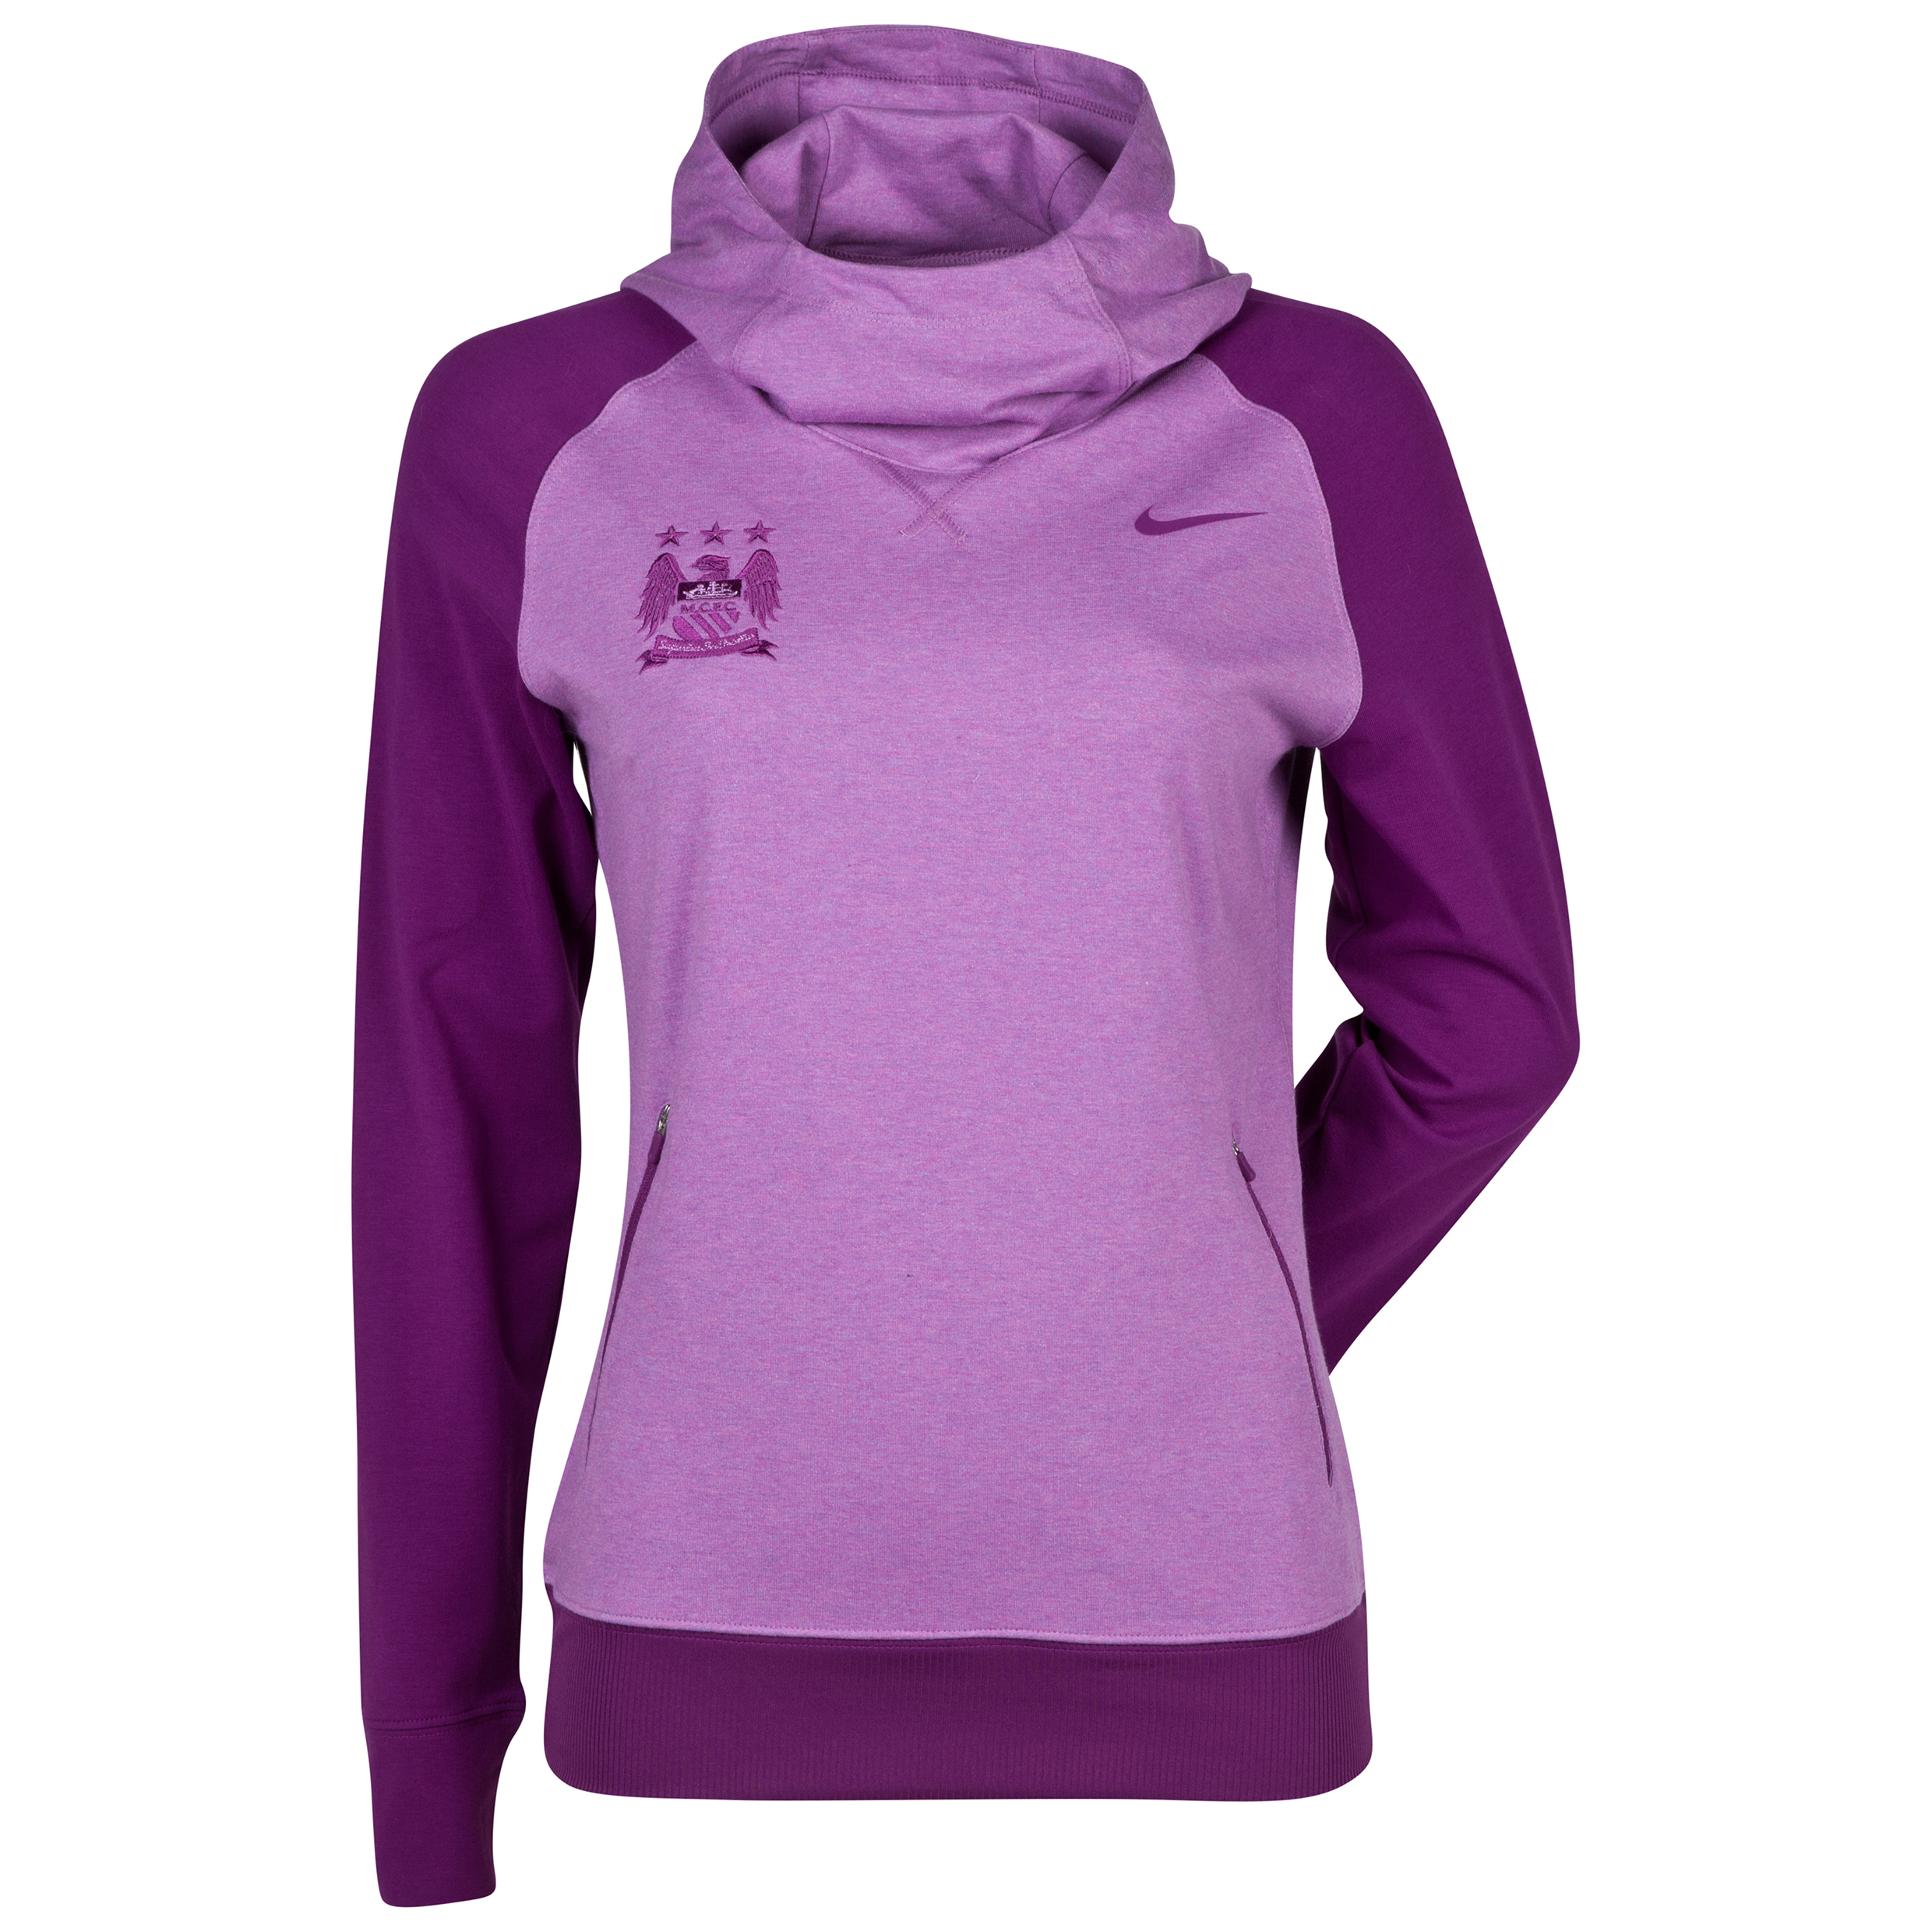 Manchester City Nike Sport Hoody - Womens Purple